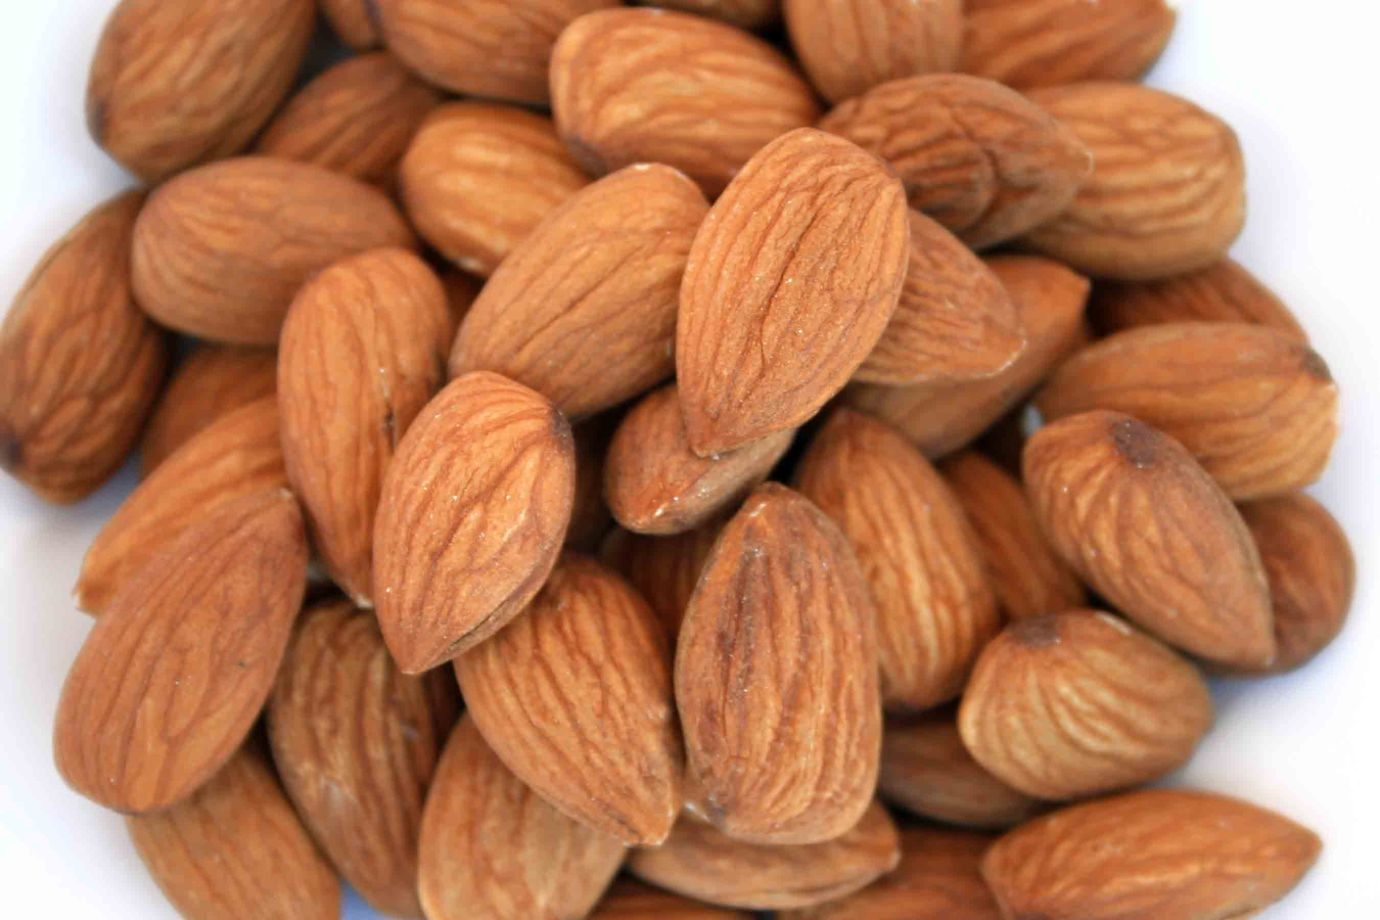 almonds for a proper diet